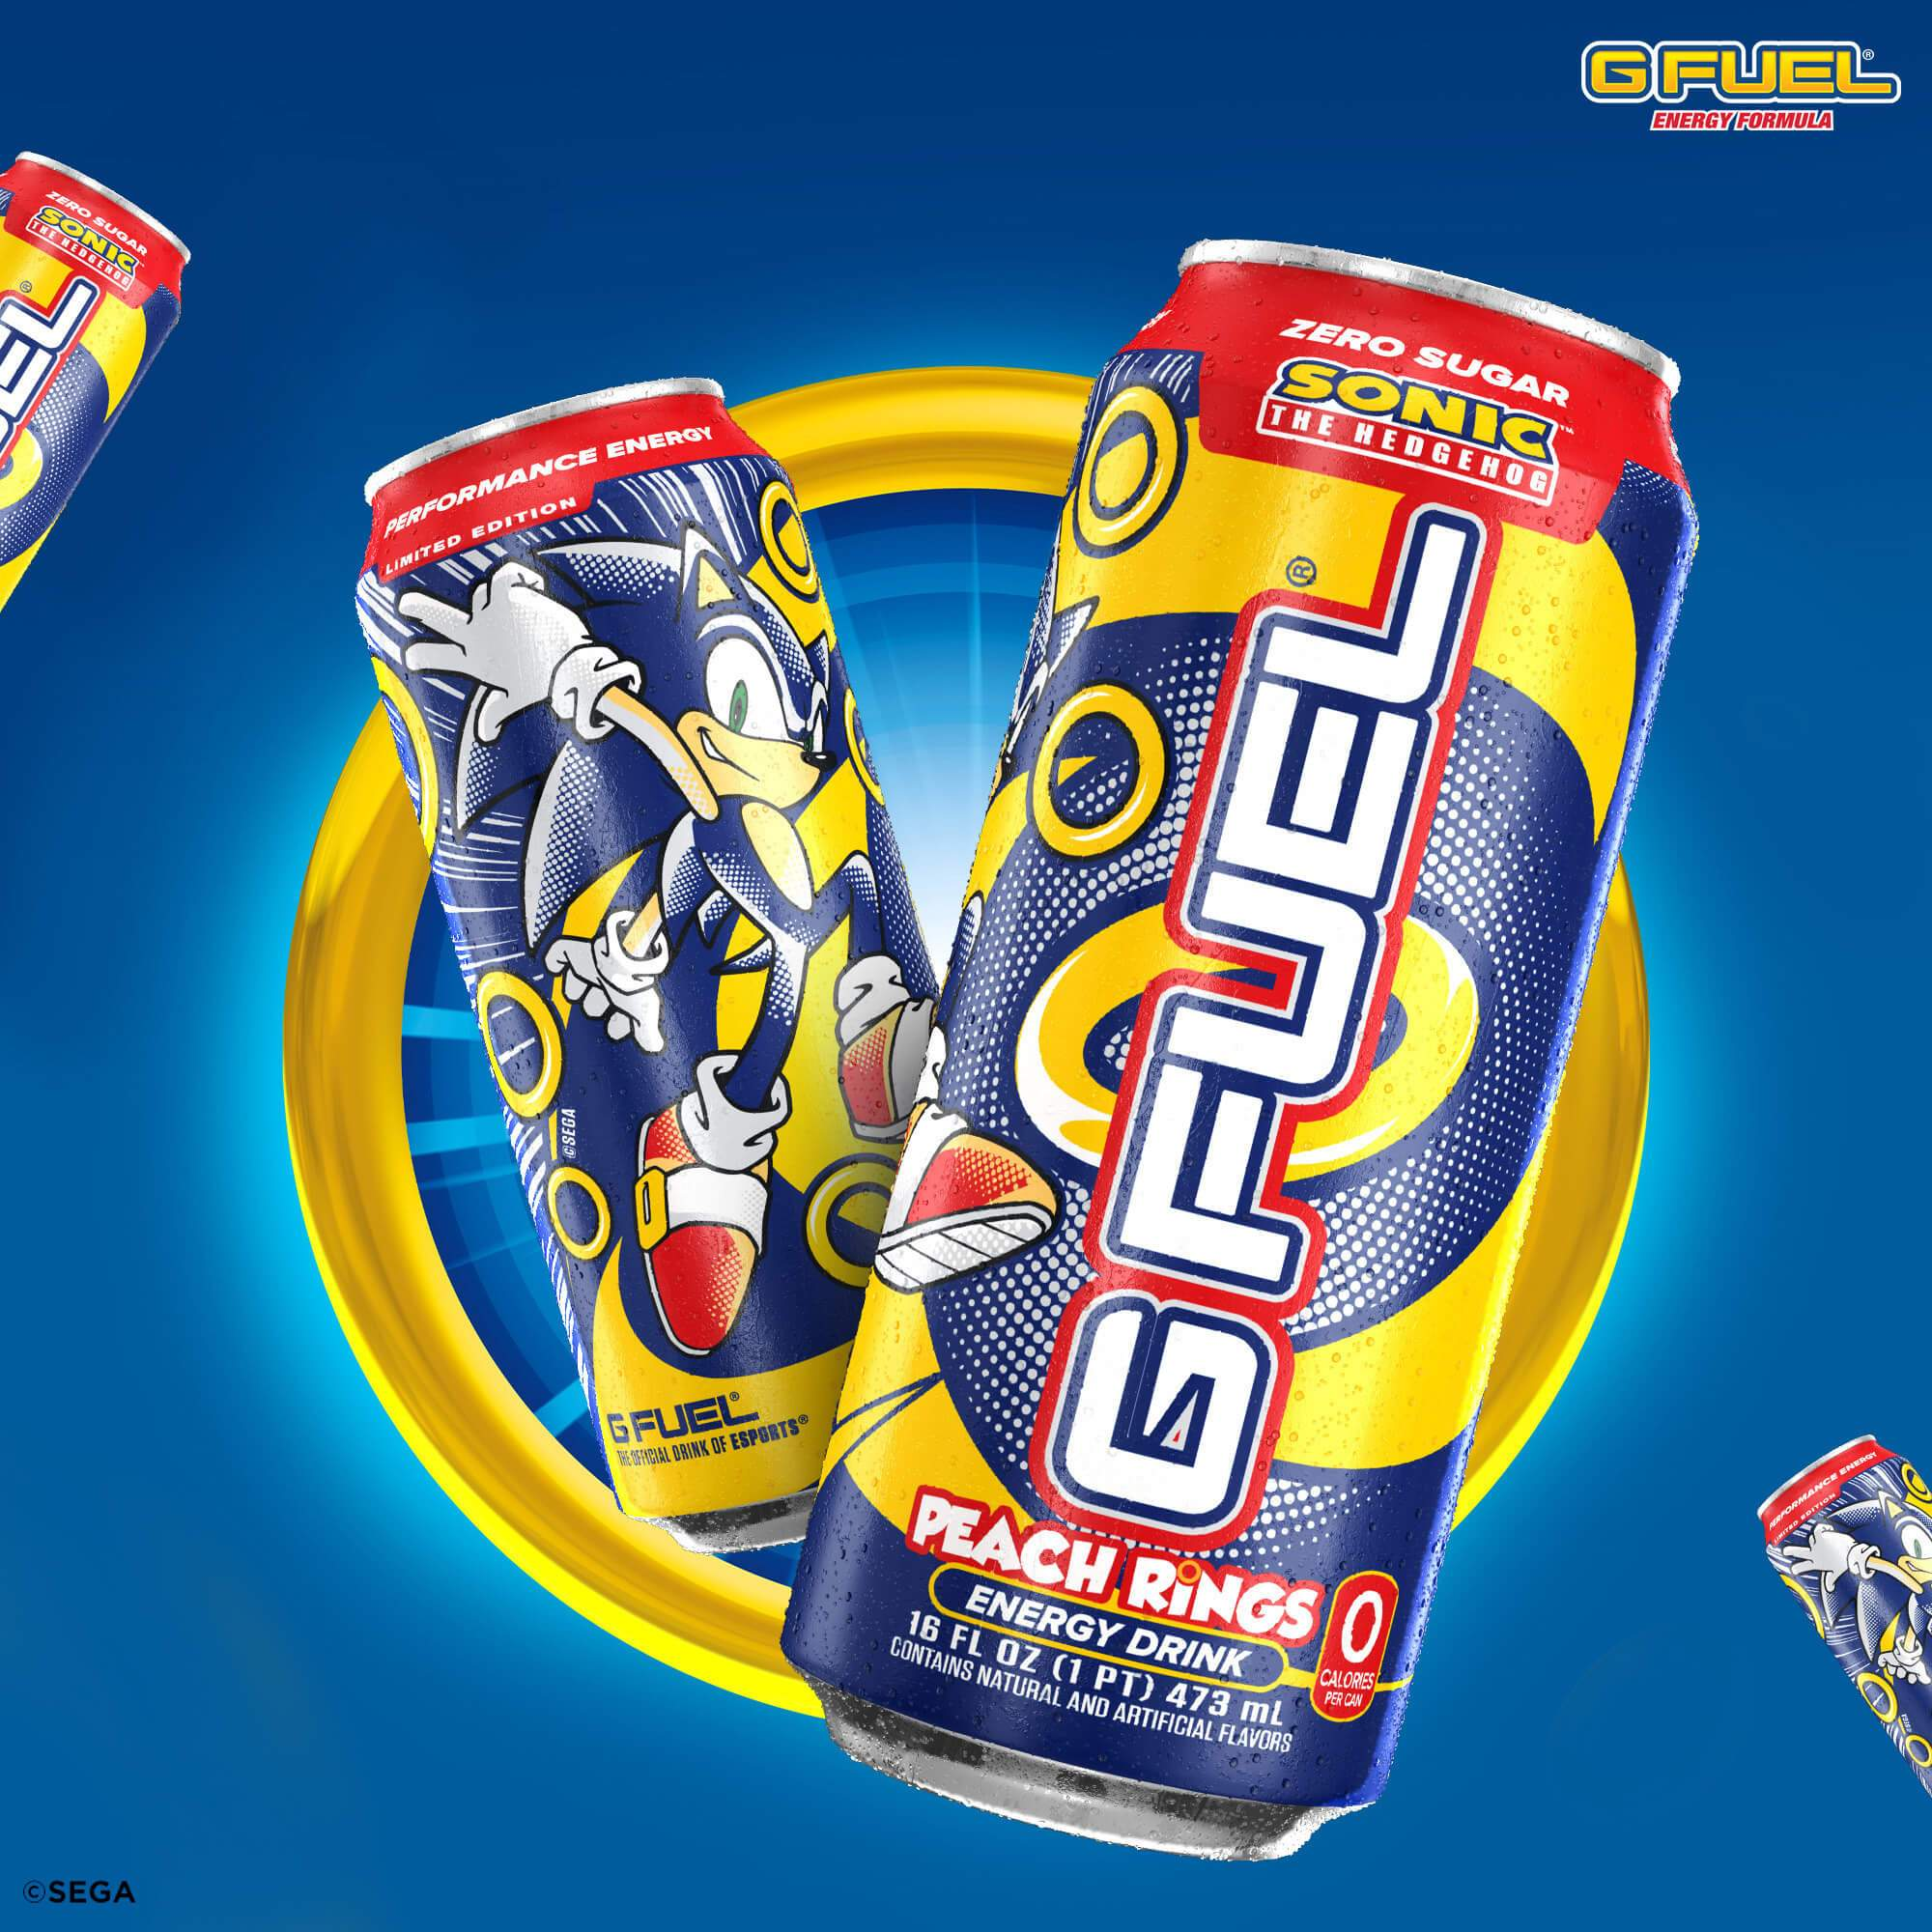 Sonic the Hedgehog Peach Rings G FUEL energy drink cans will be available for sale to U.S customers at gfuel.com on August 12, 2020.